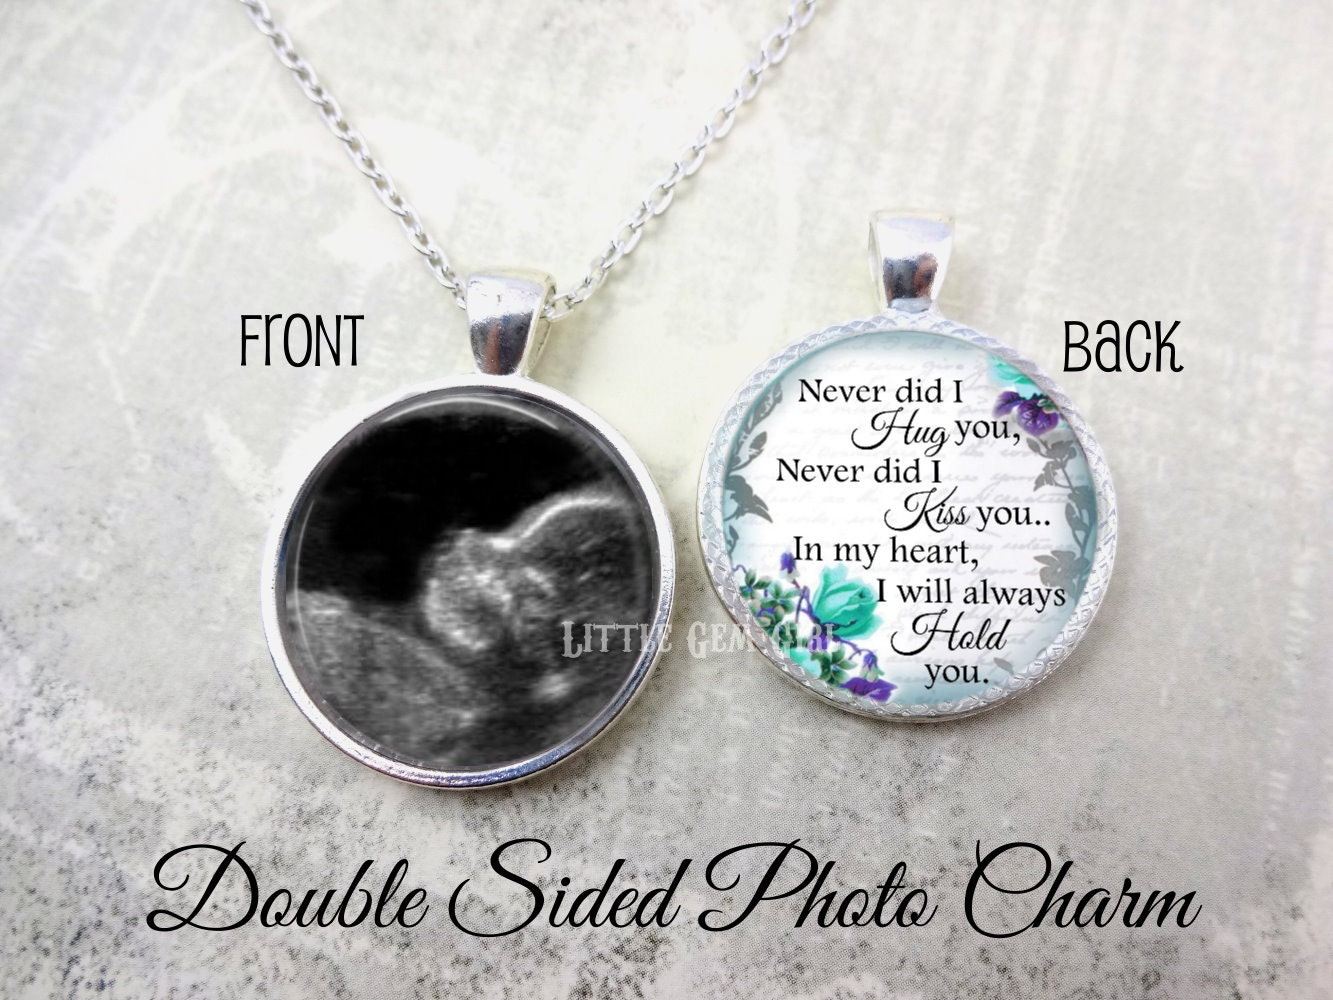 hearts memory original products our hear necklace in miscarriage little jewelry photo forever peanut